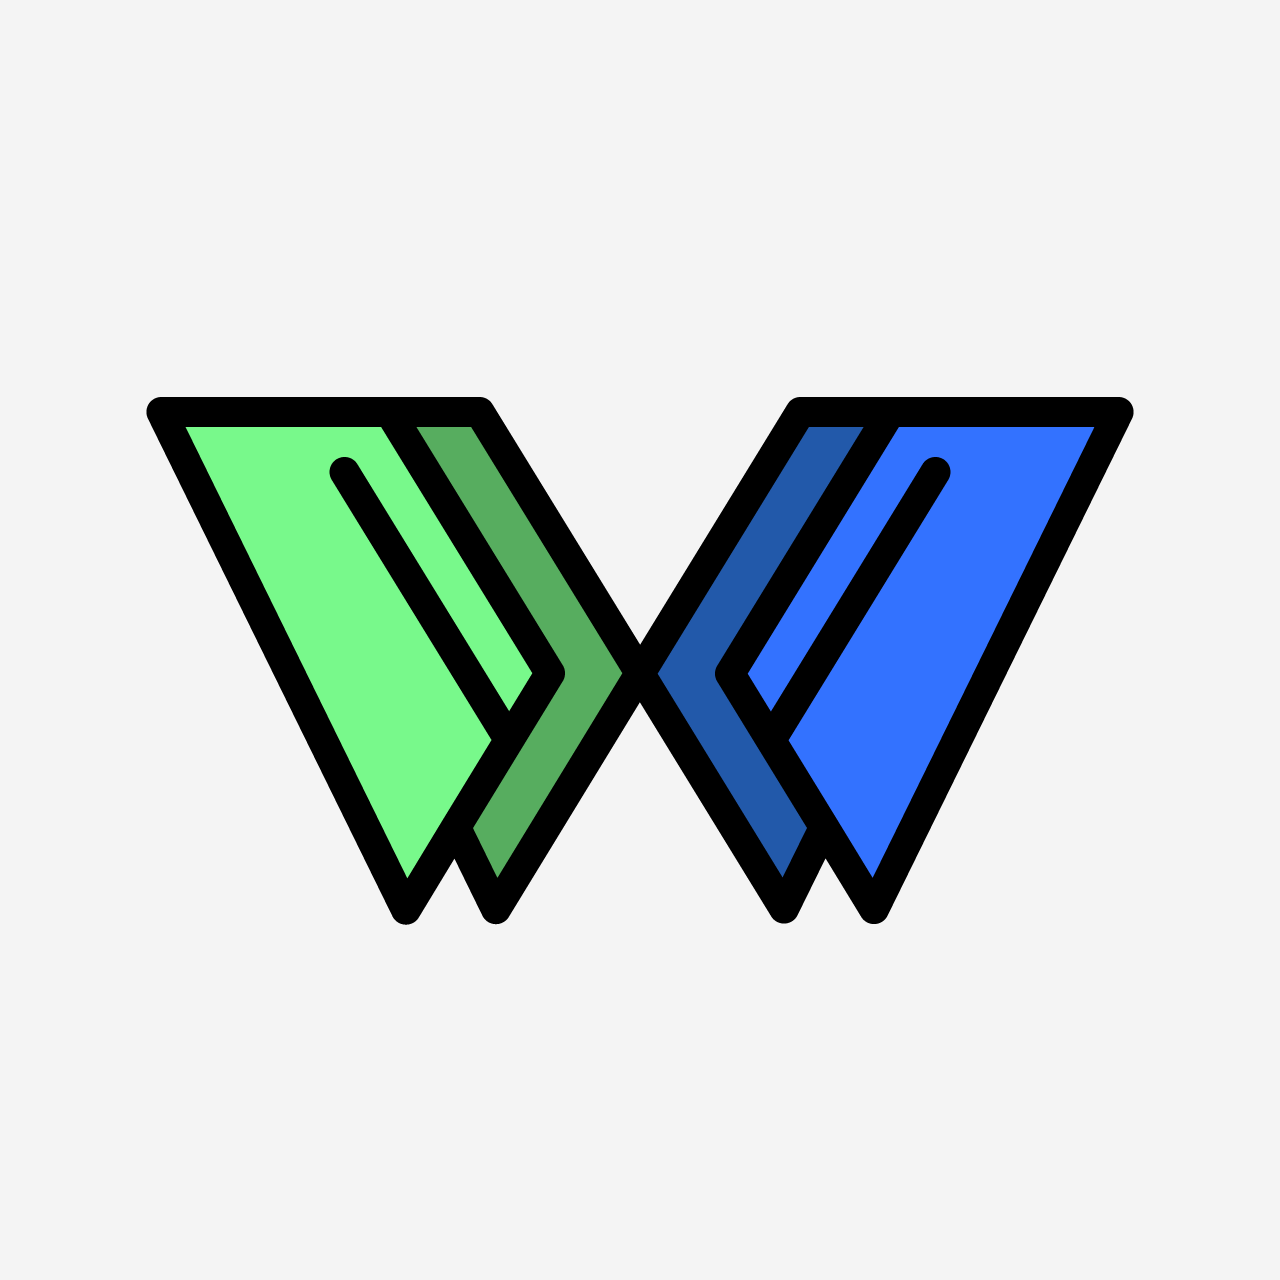 My W submission for 36 Days of Type